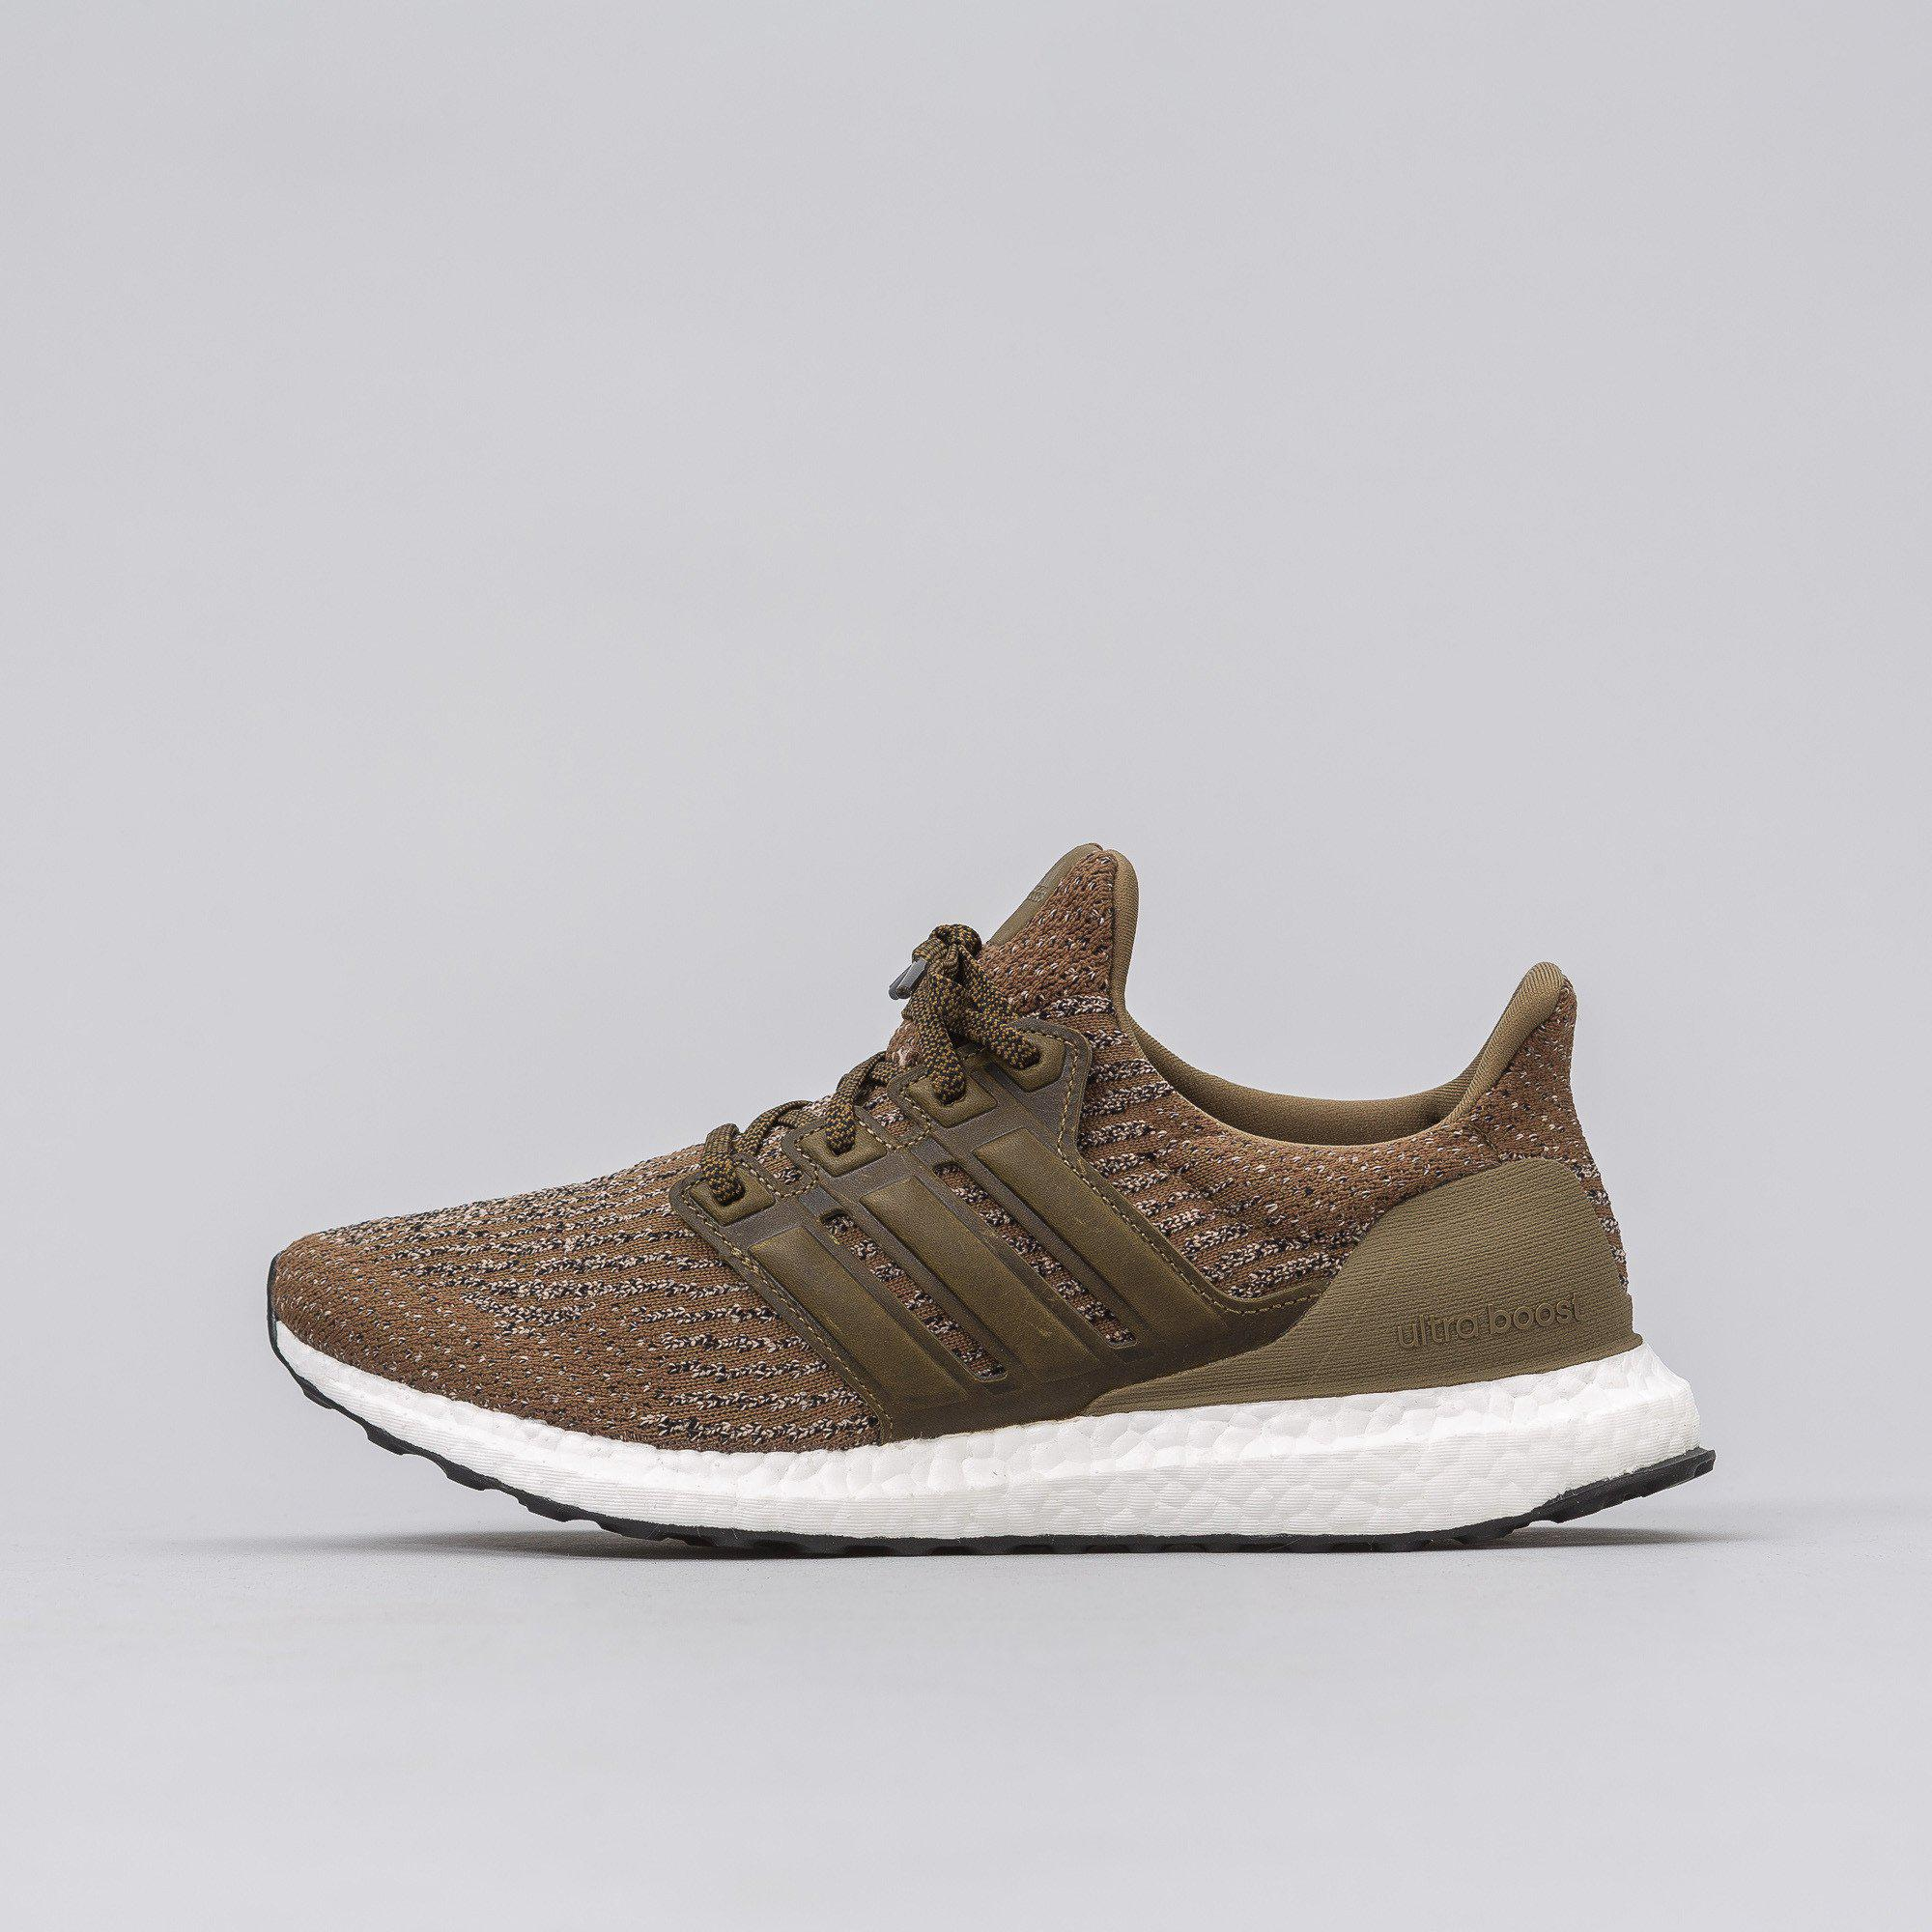 479735f46f01 Lyst - adidas Ultra Boost 3.0 In Trace Olive for Men